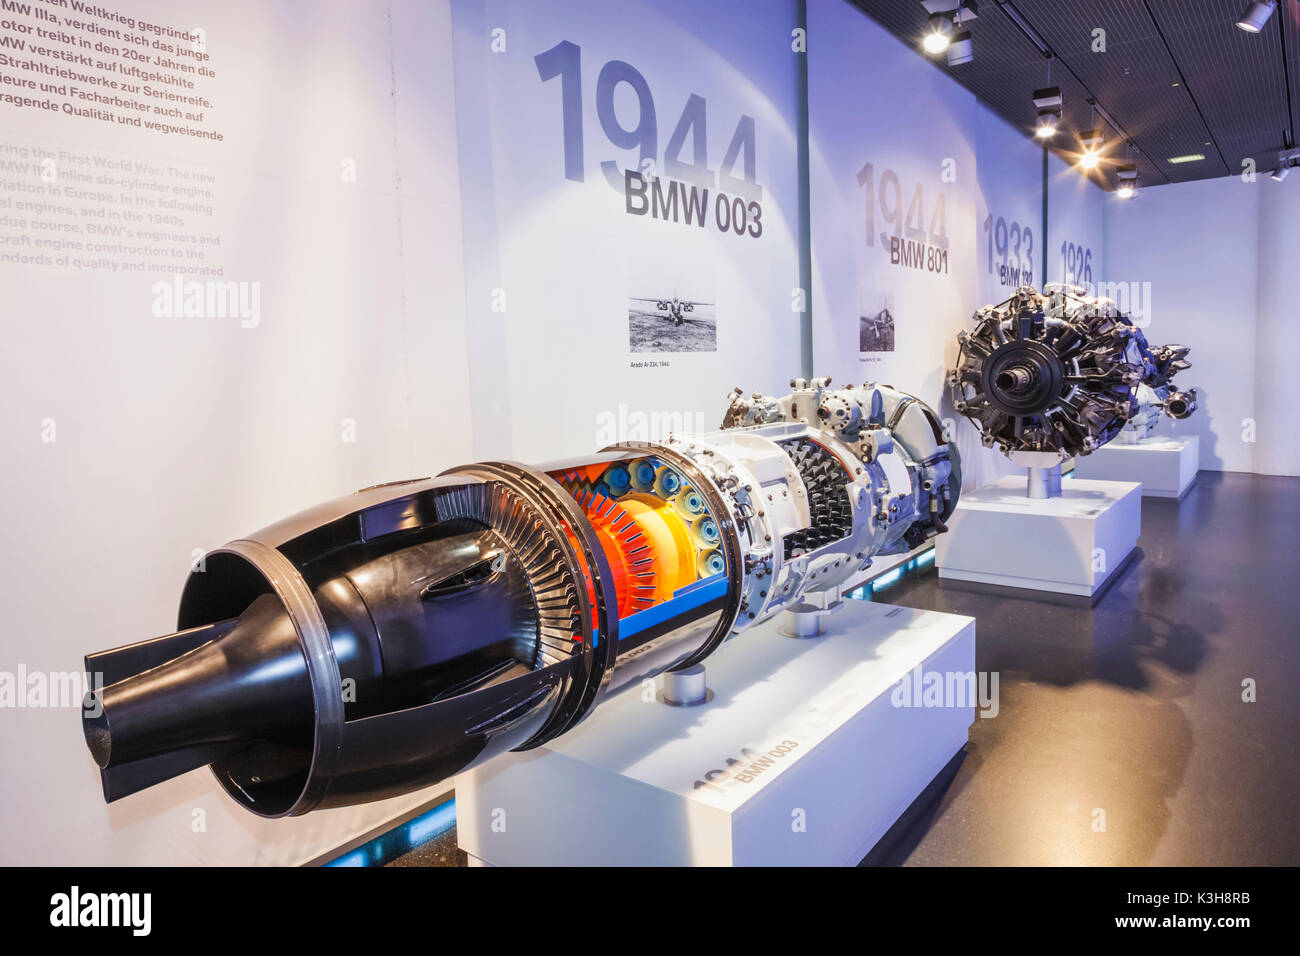 Germany, Bavaria, Munich, BMW Museum, Display of Historic Aeroplane Engines - Stock Image